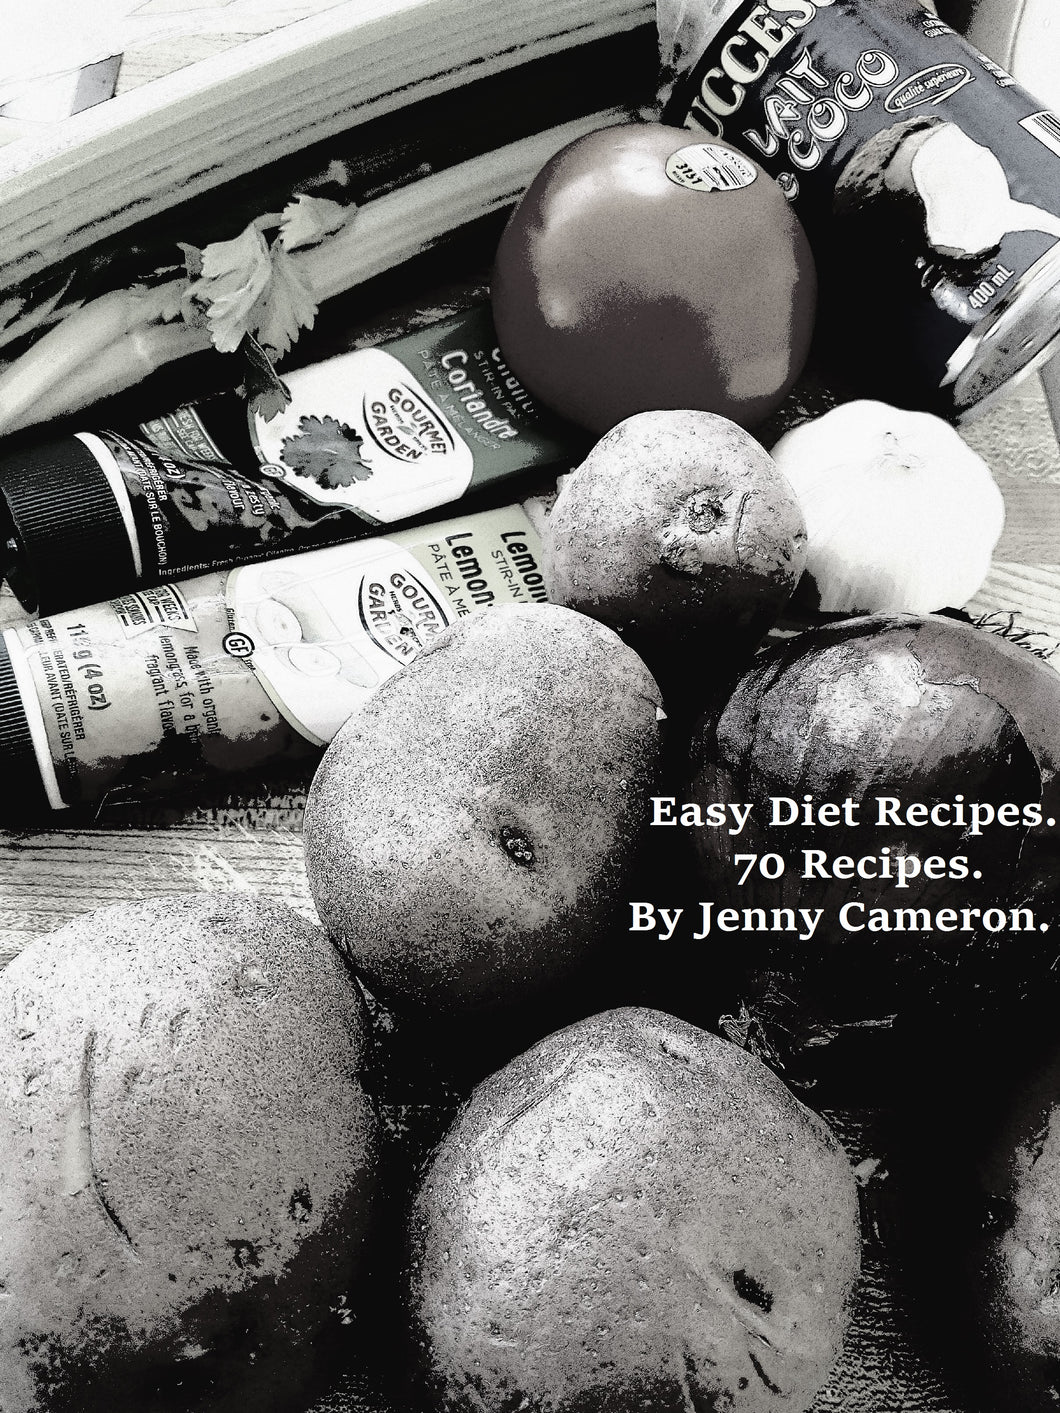 Easy Diet Recipes 70 Recipes by Jenny Cameron